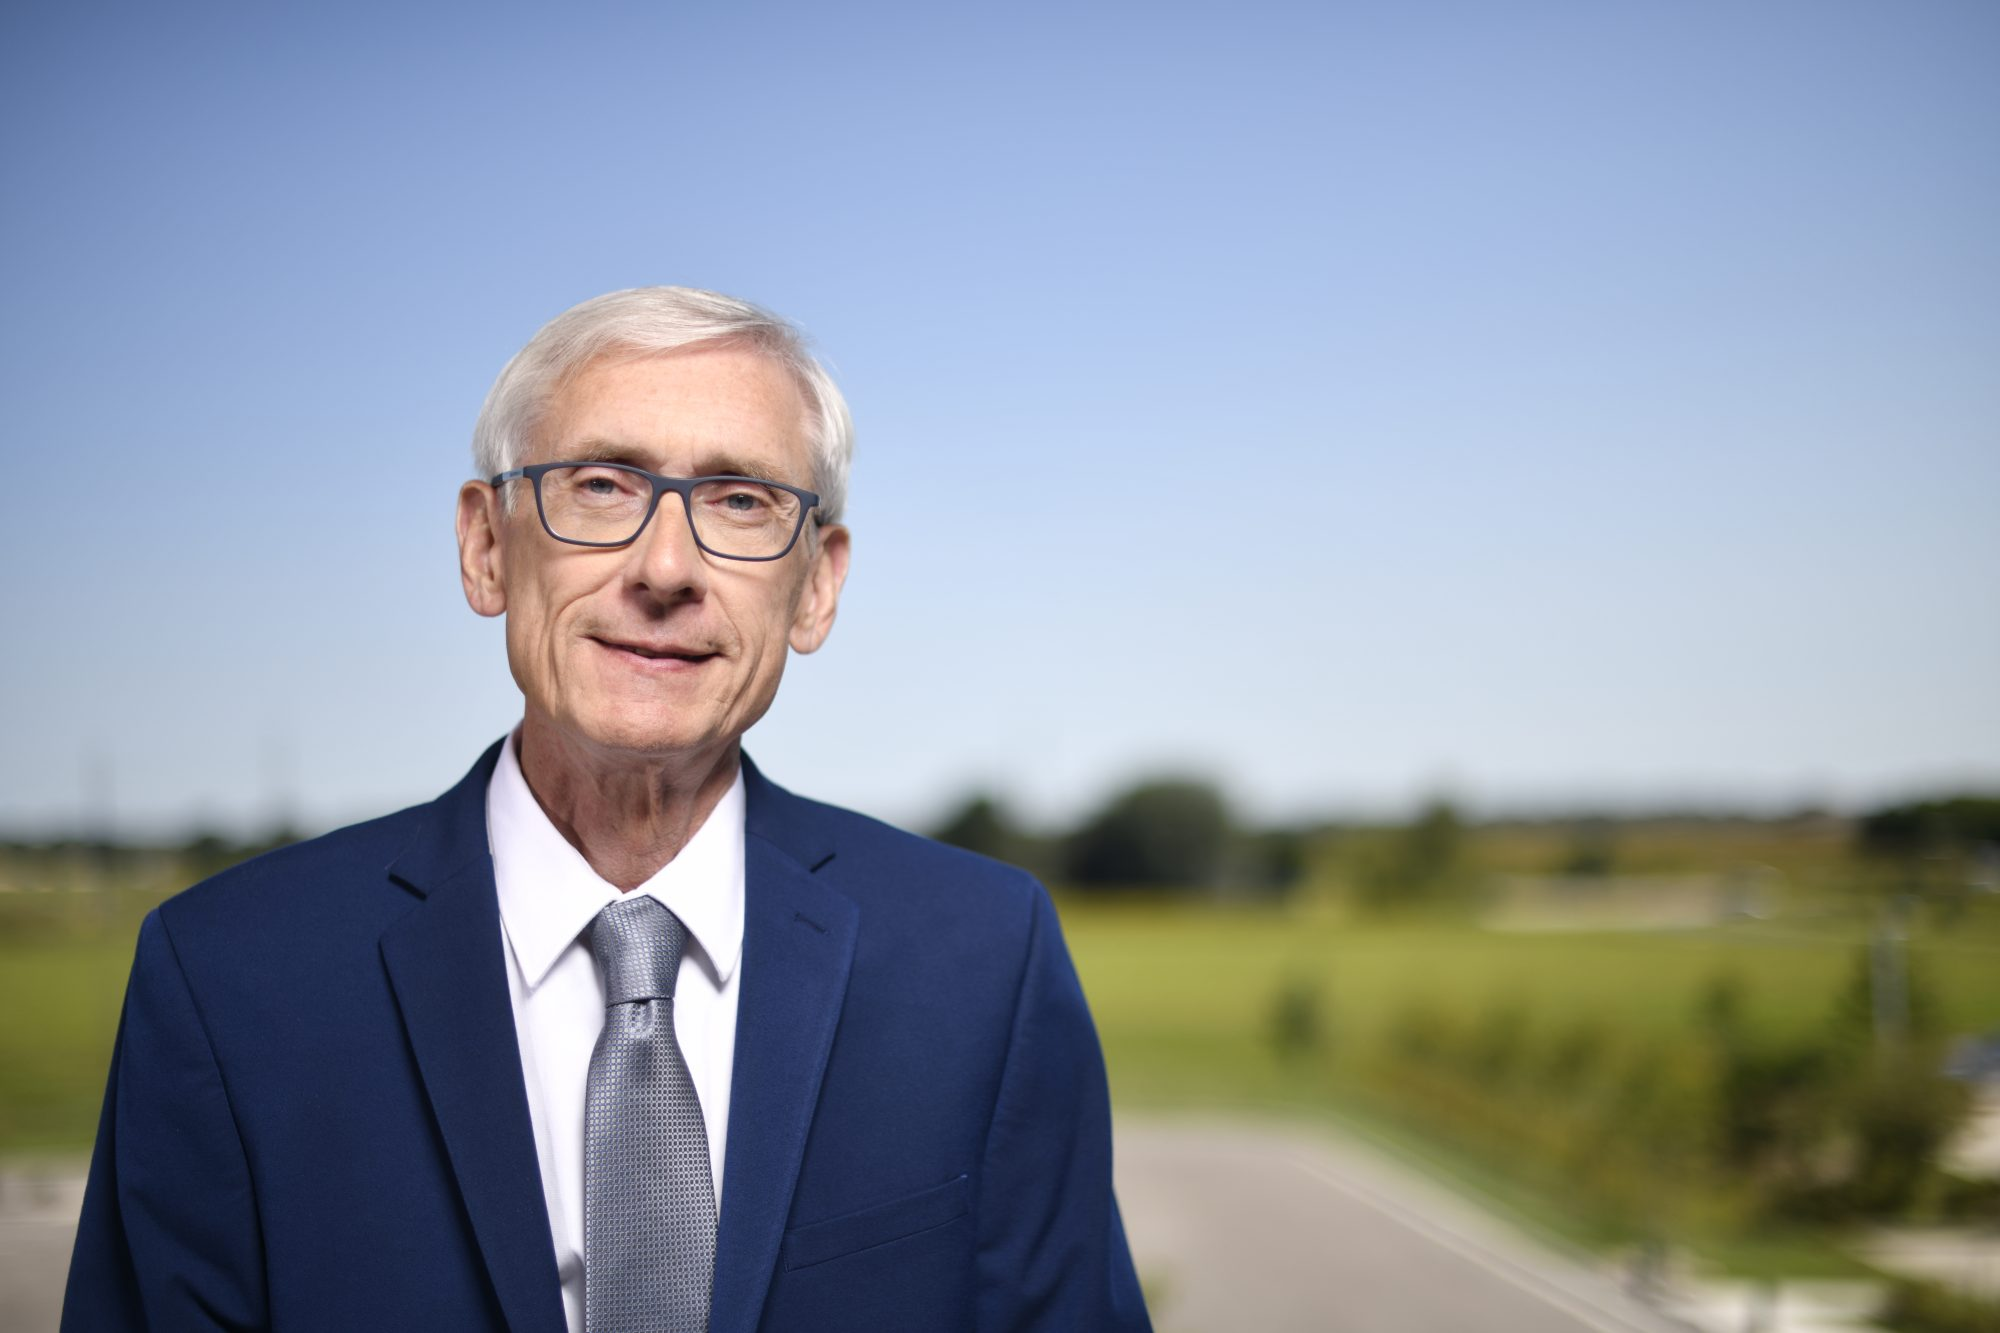 Governor Evers and DHS Direct an Additional $80 Million to Support Skilled Nursing Facilities